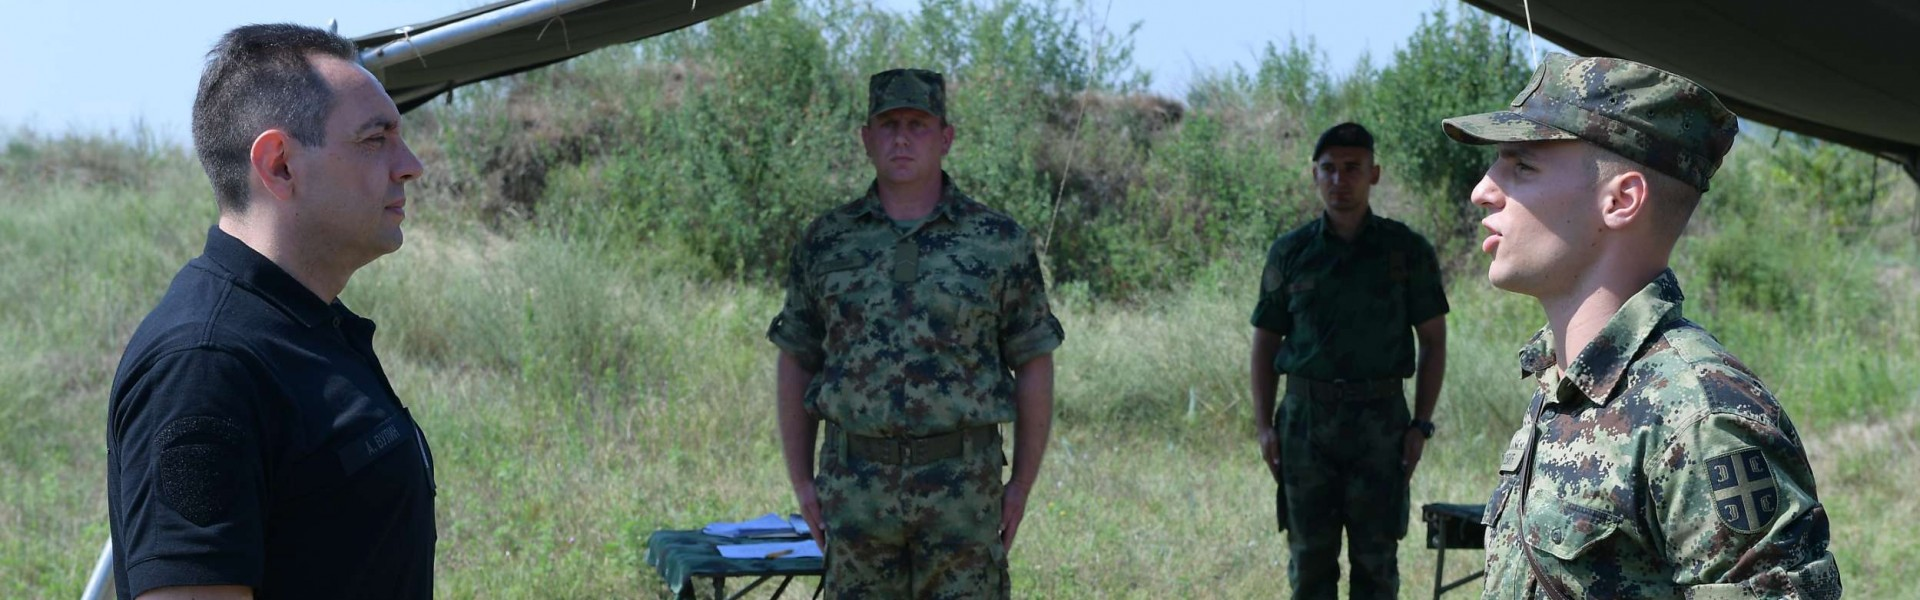 "Unannounced Visit from the Minister of Defence to the Training Ground ""Peskovi"""